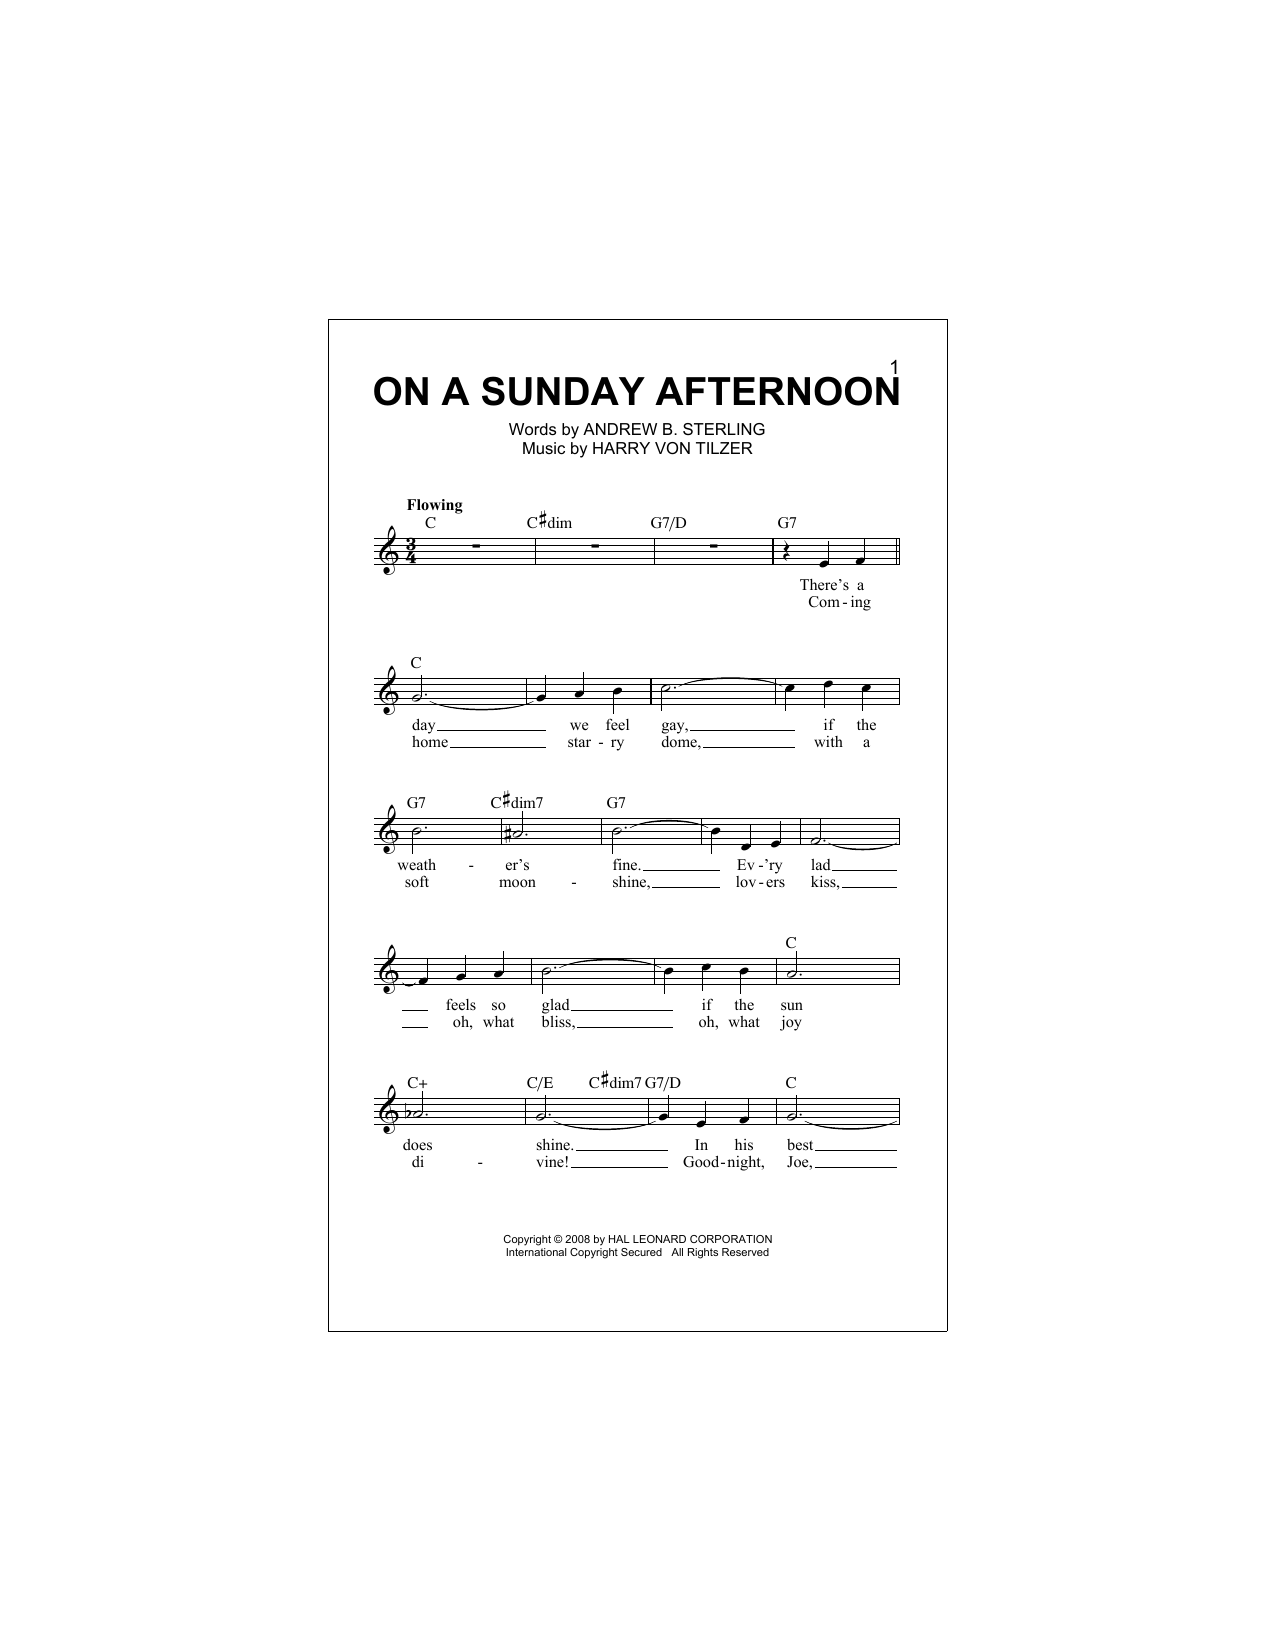 On A Sunday Afternoon Sheet Music